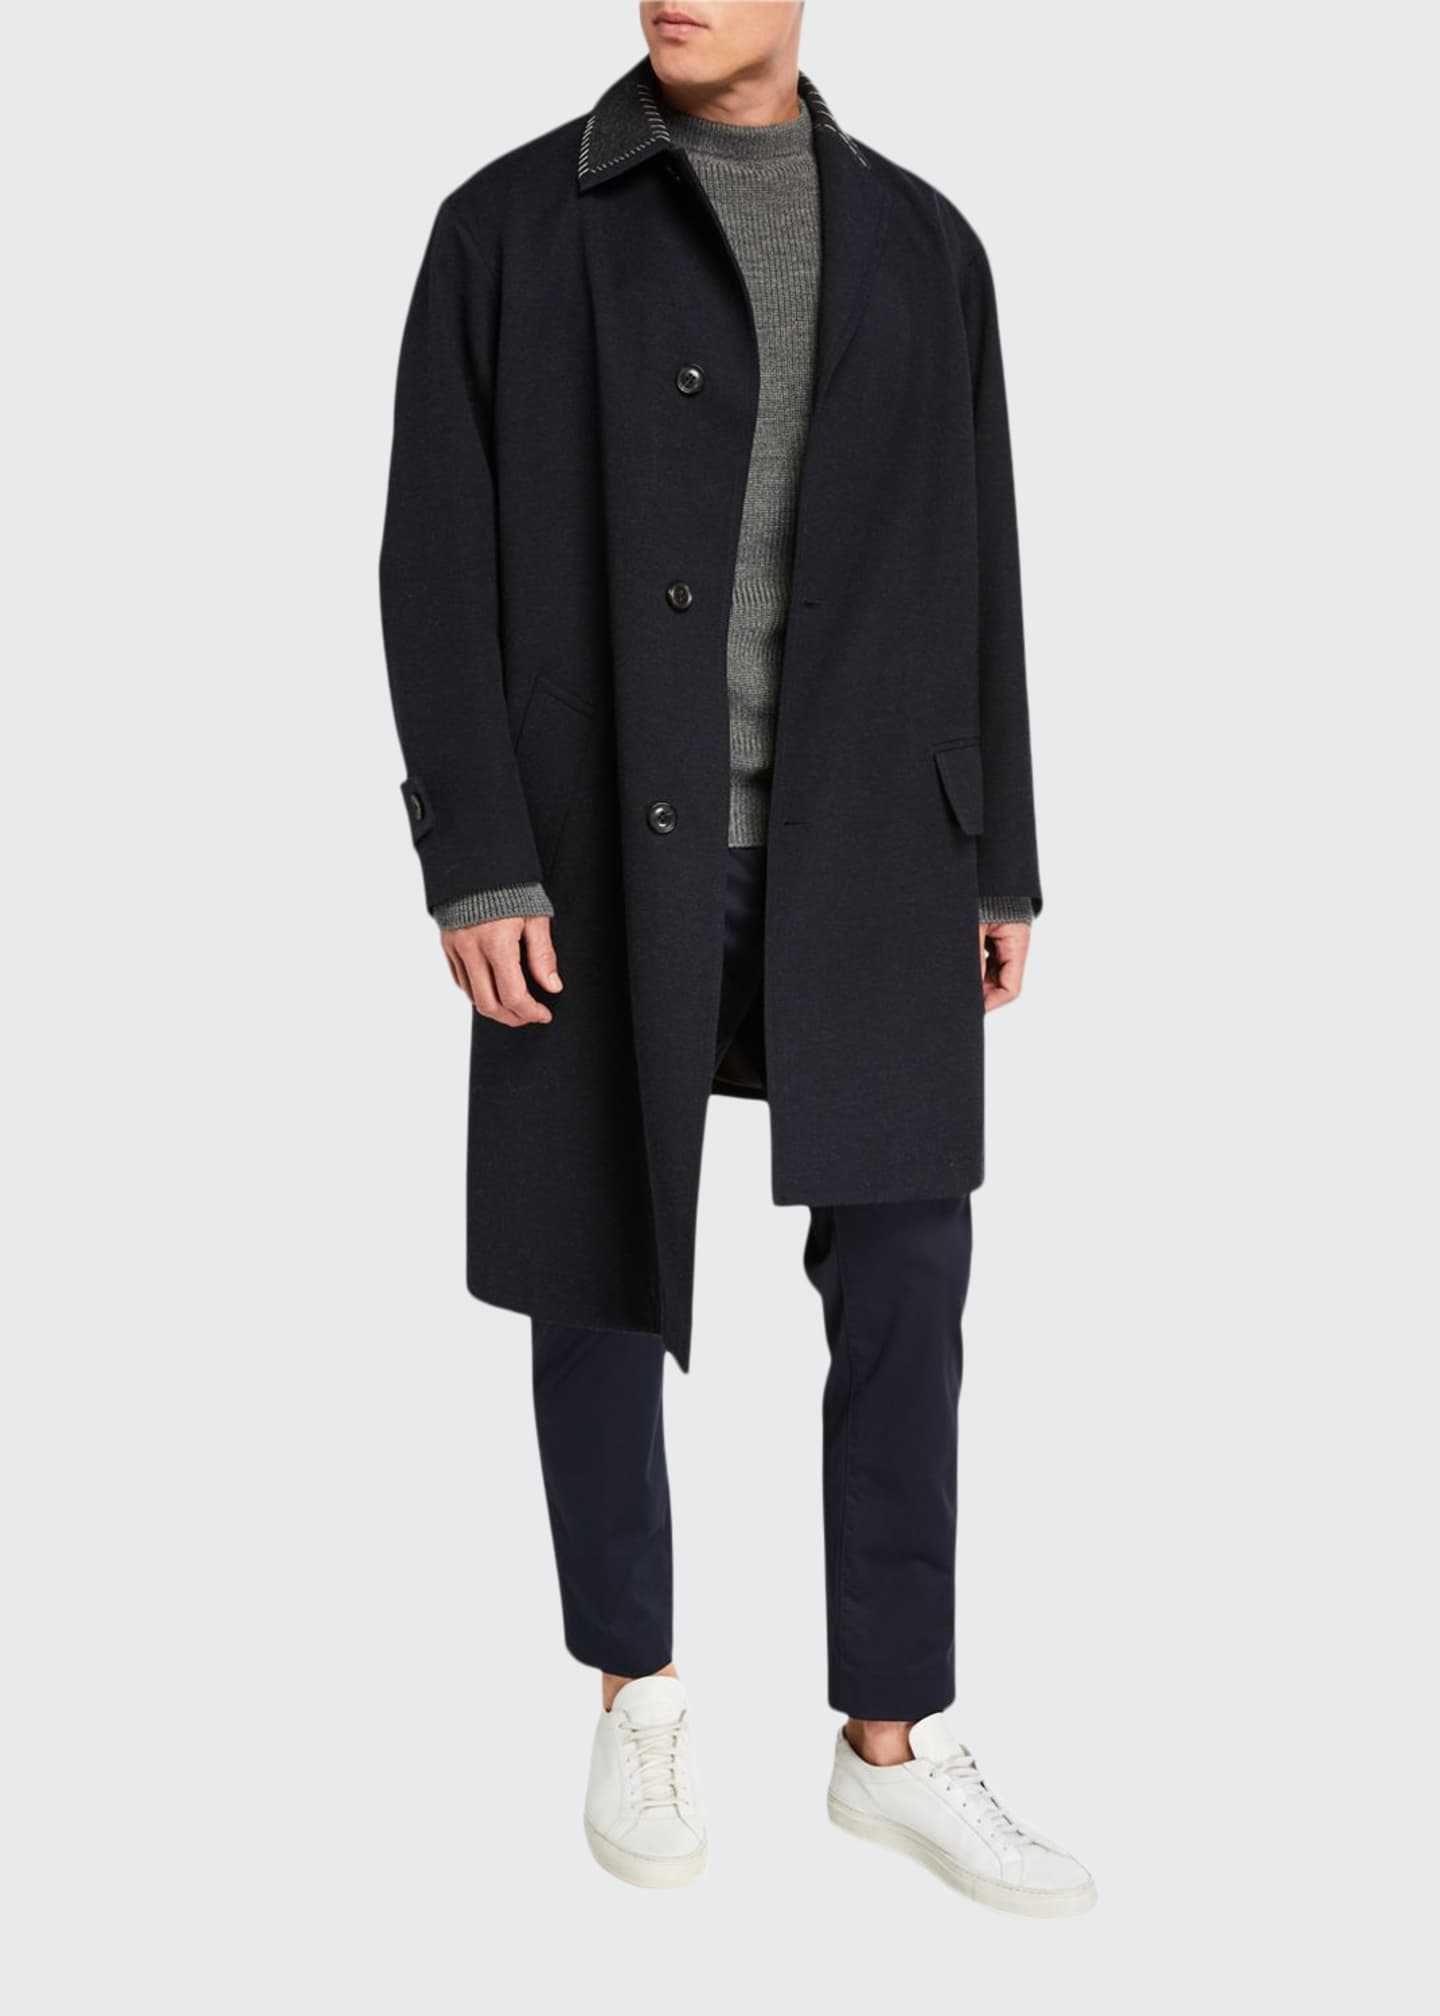 Image 1 of 3: Men's Wool Overcoat w/ Contrast Stitch Trim